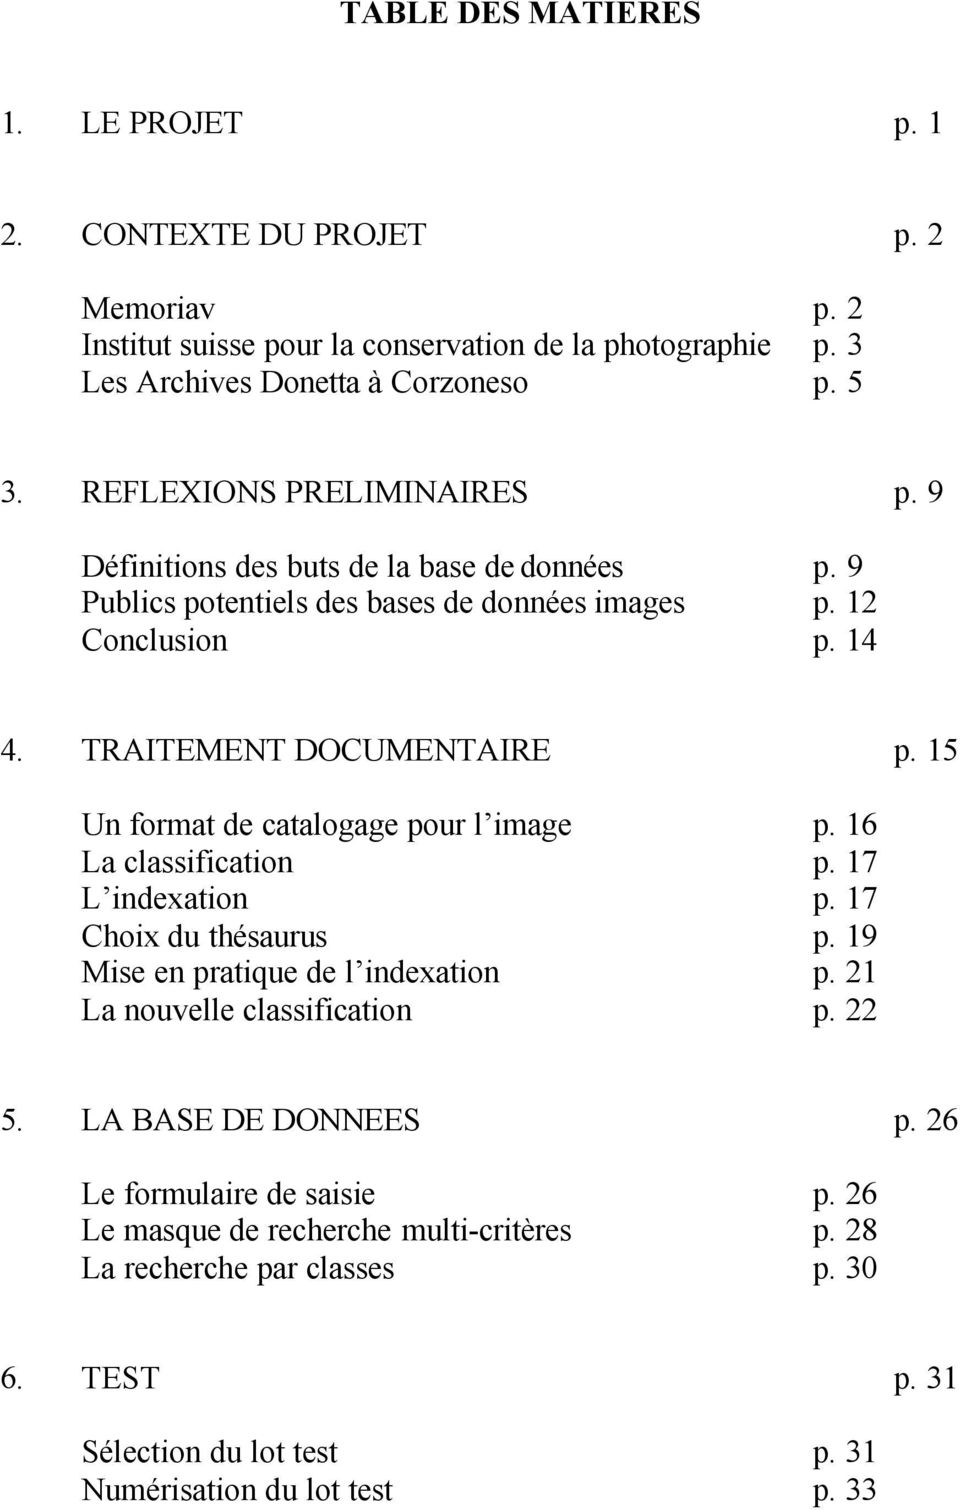 15 Un format de catalogage pour l image p. 16 La classification p. 17 L indexation p. 17 Choix du thésaurus p. 19 Mise en pratique de l indexation p. 21 La nouvelle classification p. 22 5.